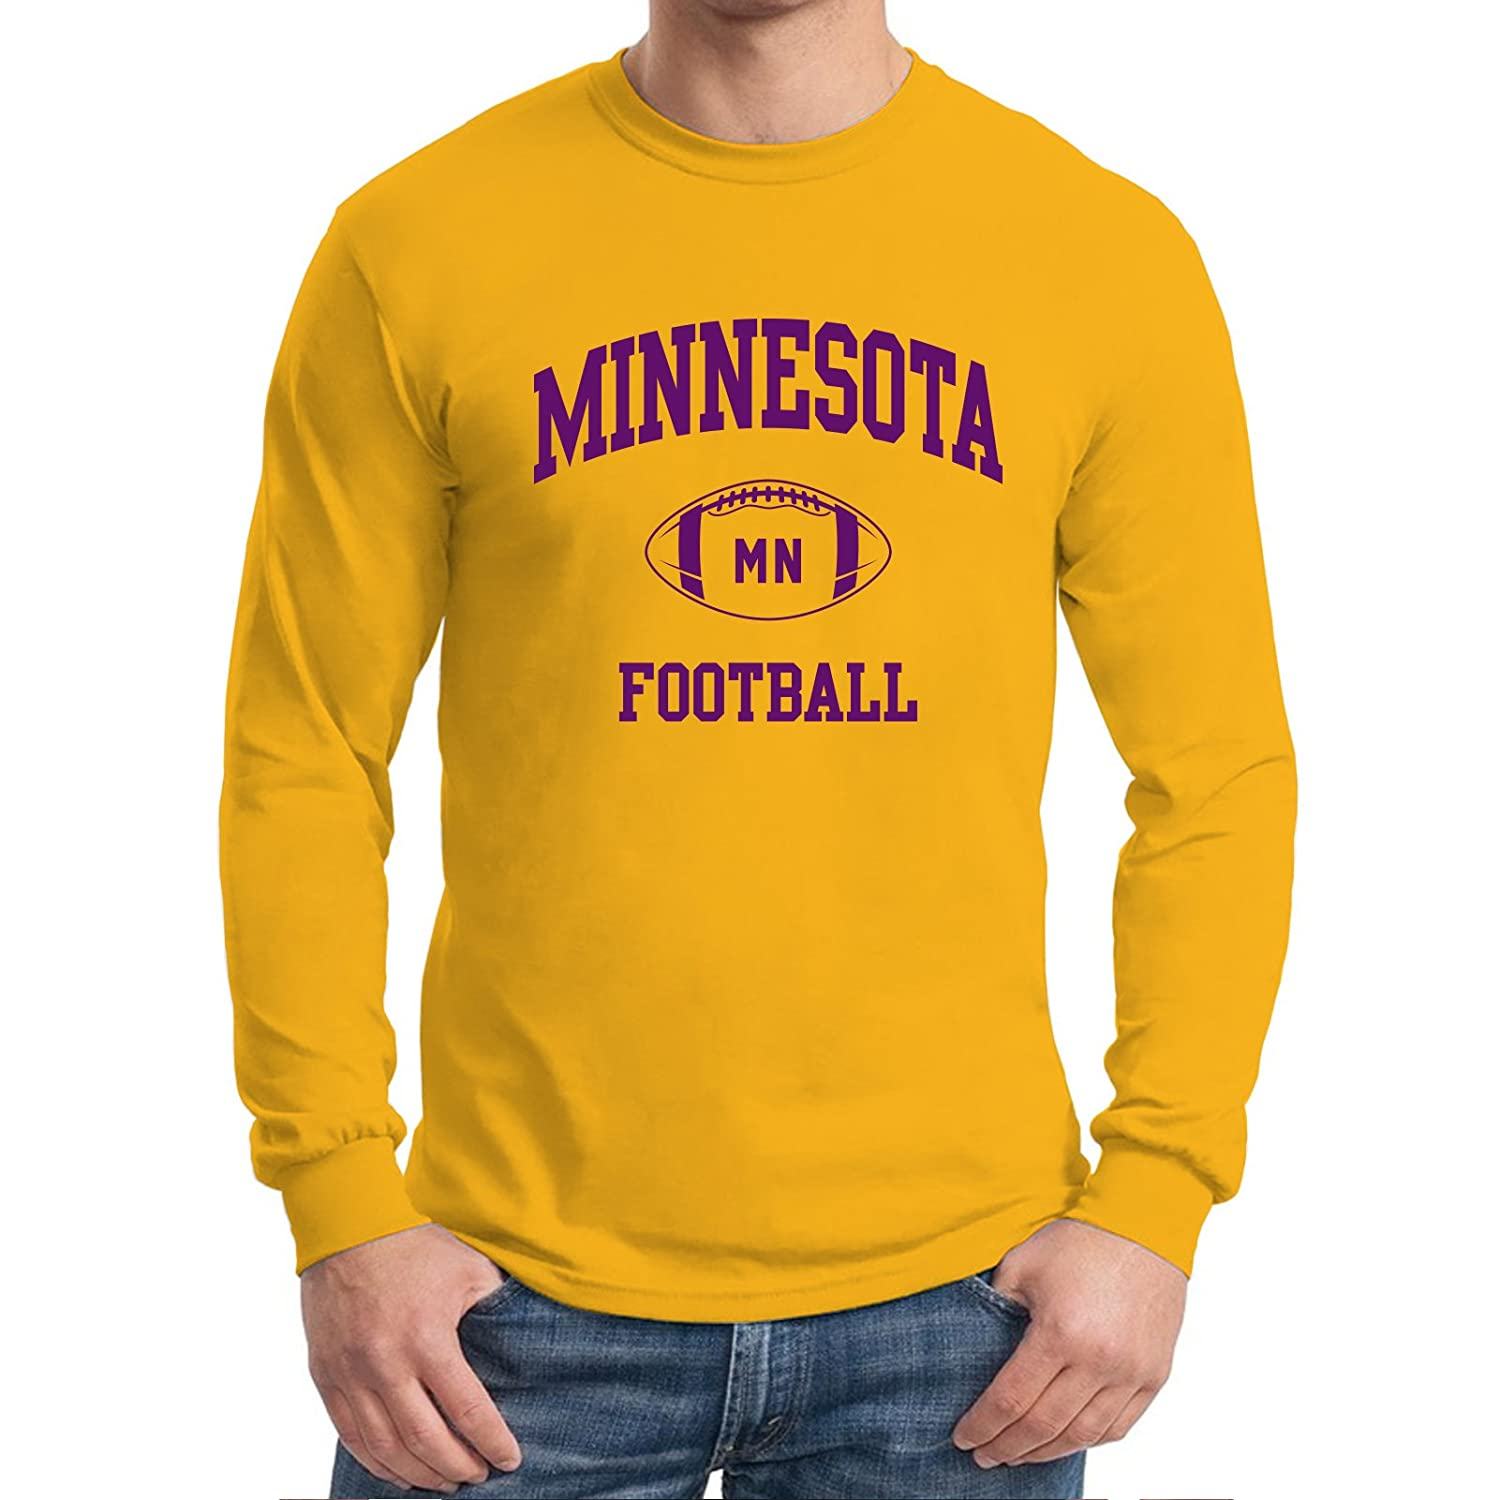 UGP Campus Apparel City Classic Football Arch American Football Team Long  Sleeve T Shirt 0d4de960c